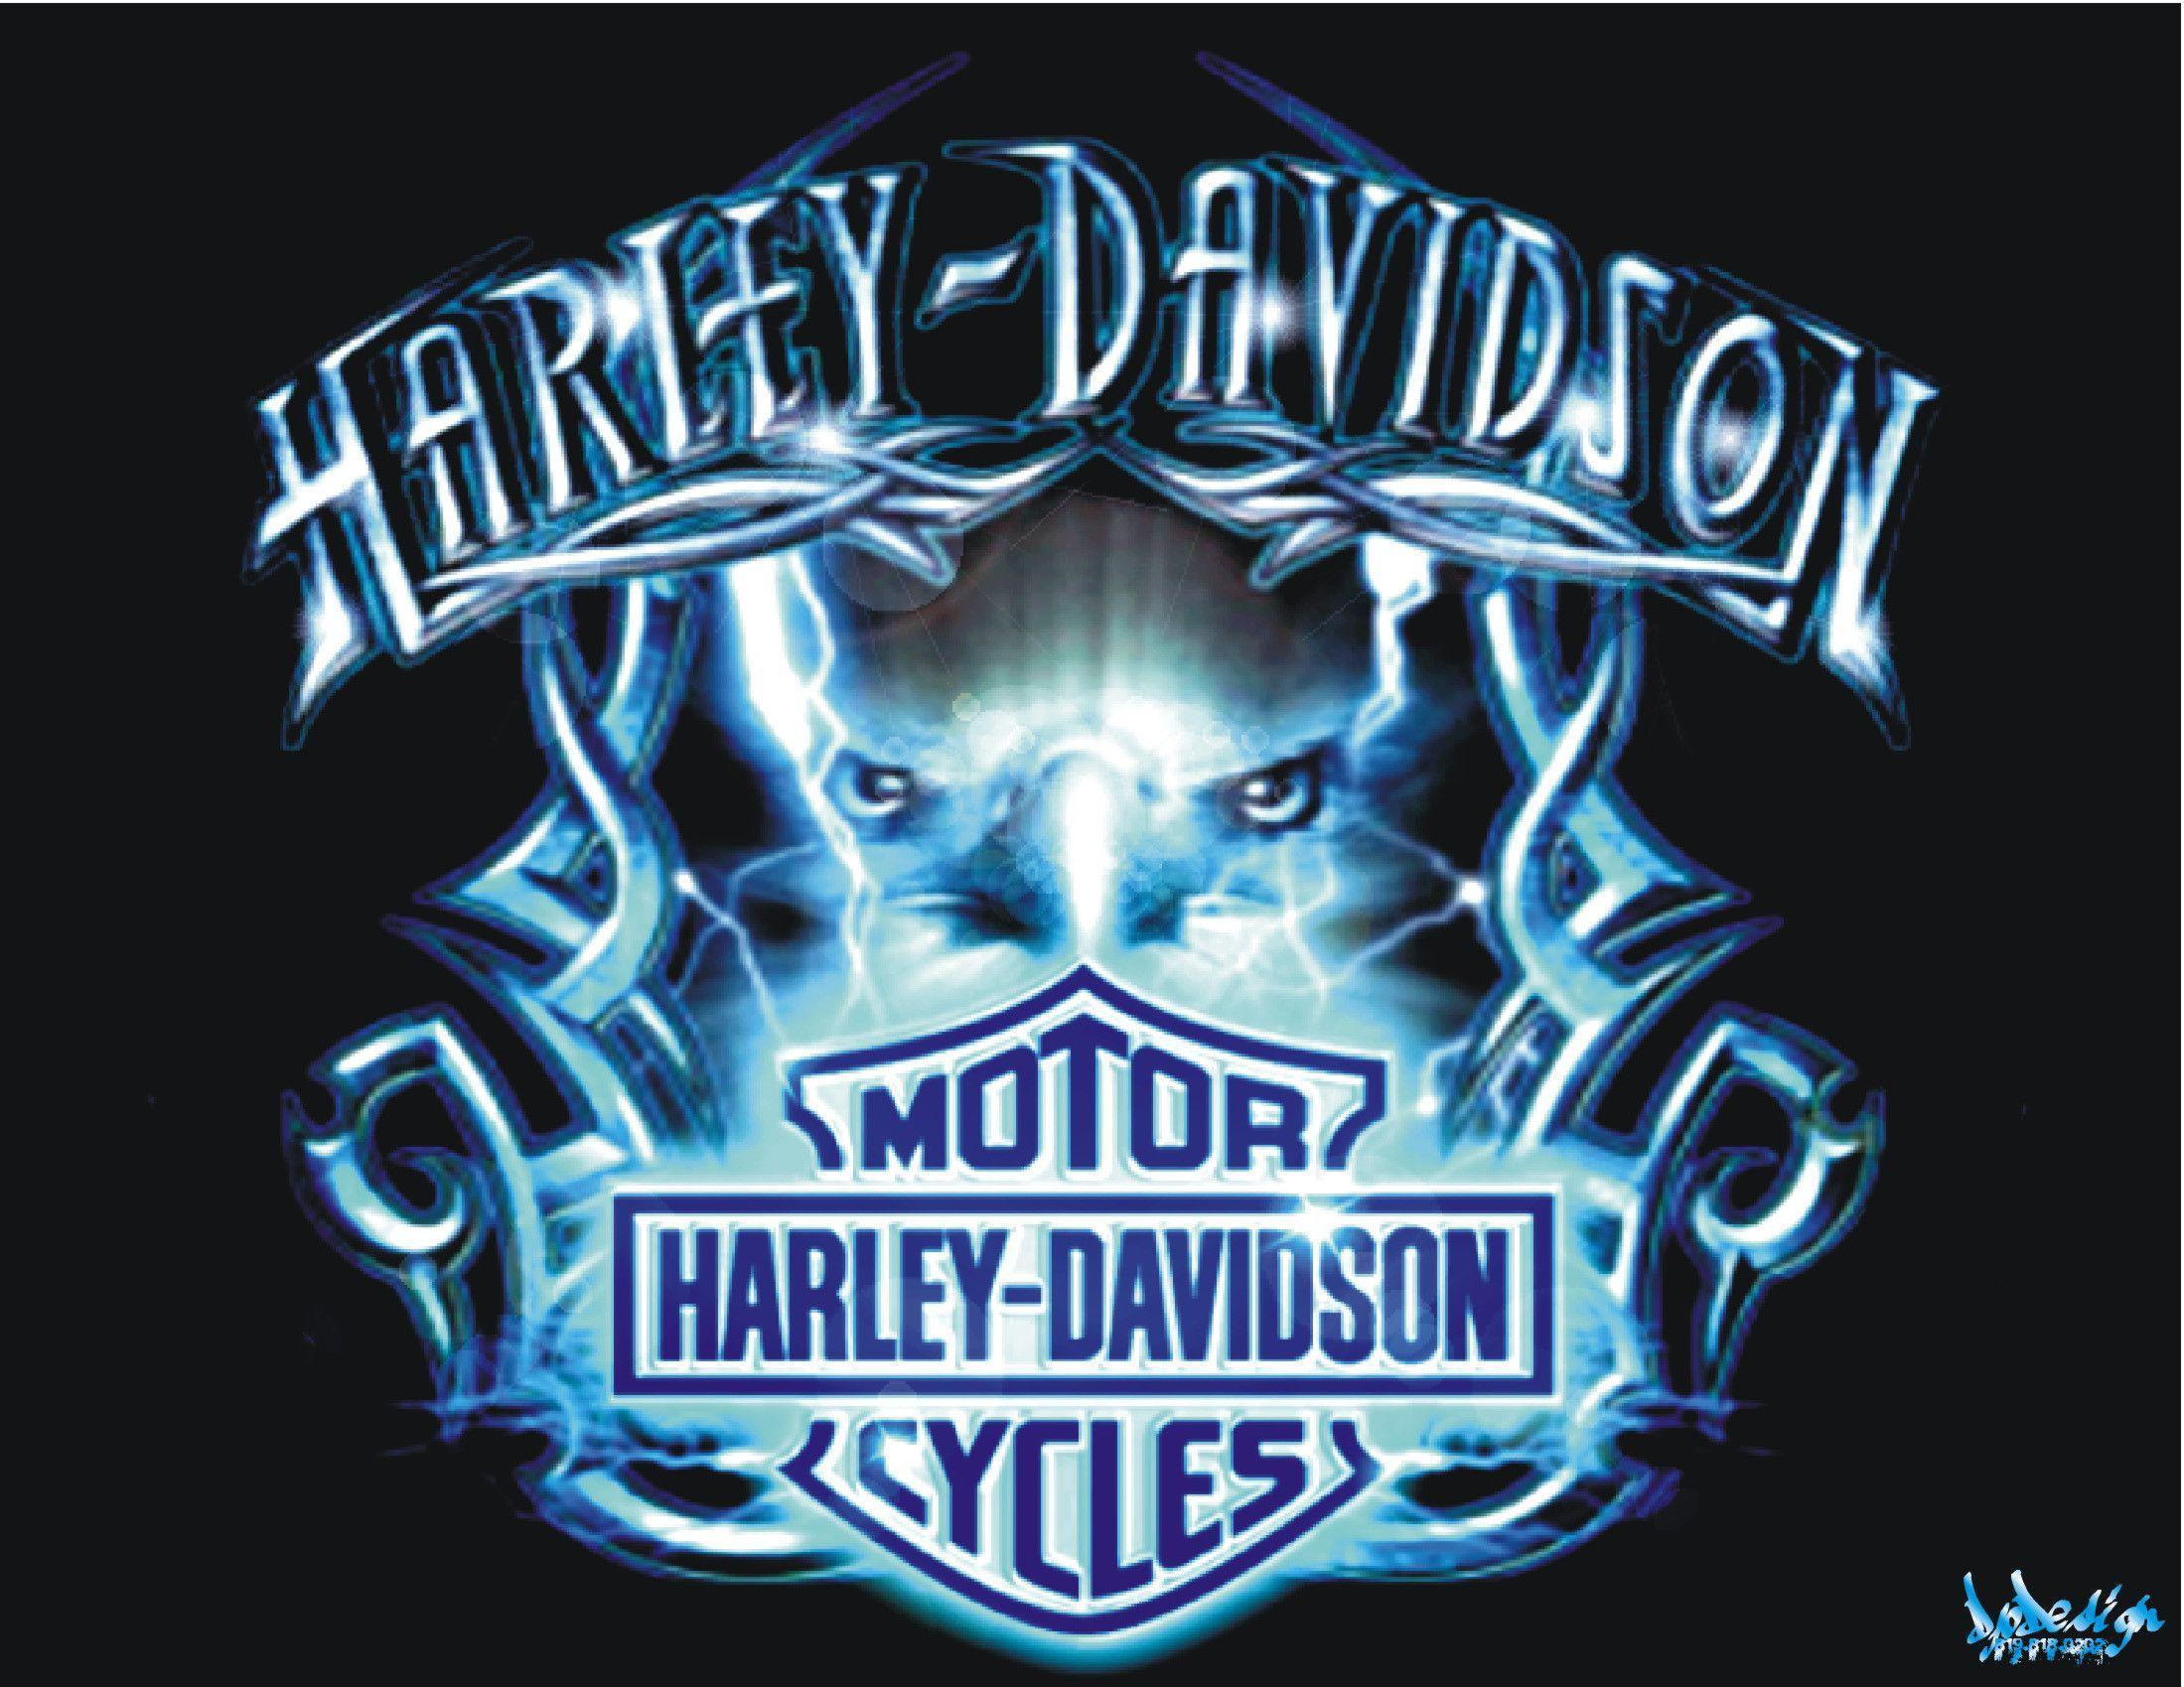 Harley Davidson Logo Wallpapers 2199x1699